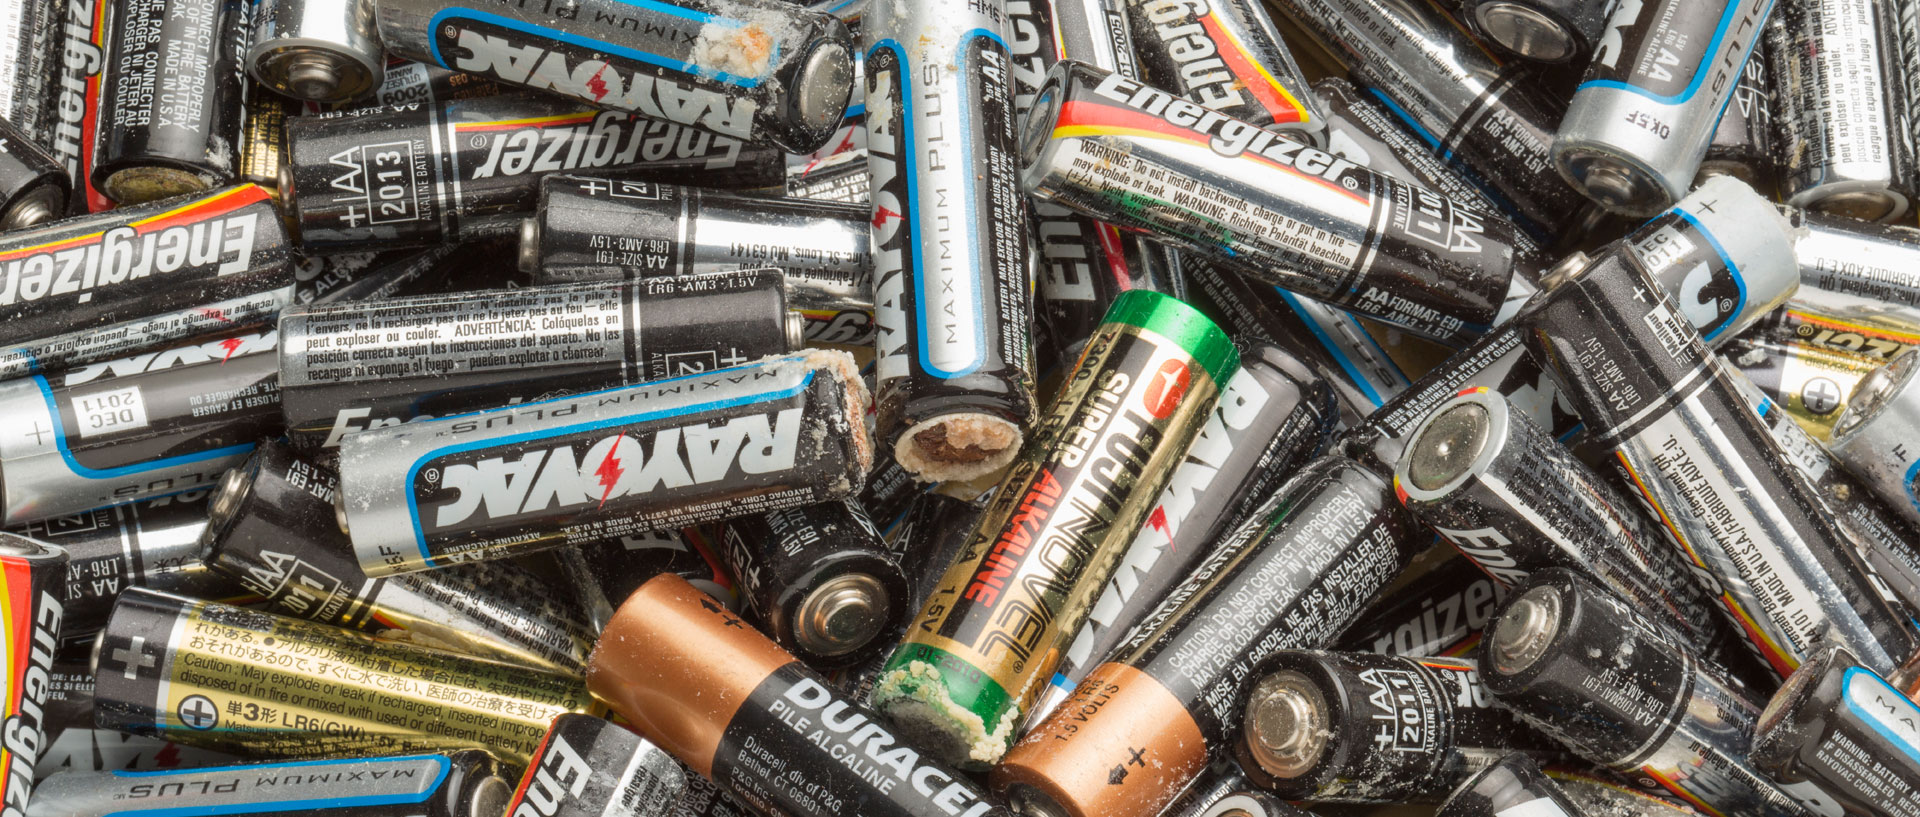 Why Do Batteries Leak Consumer Reports